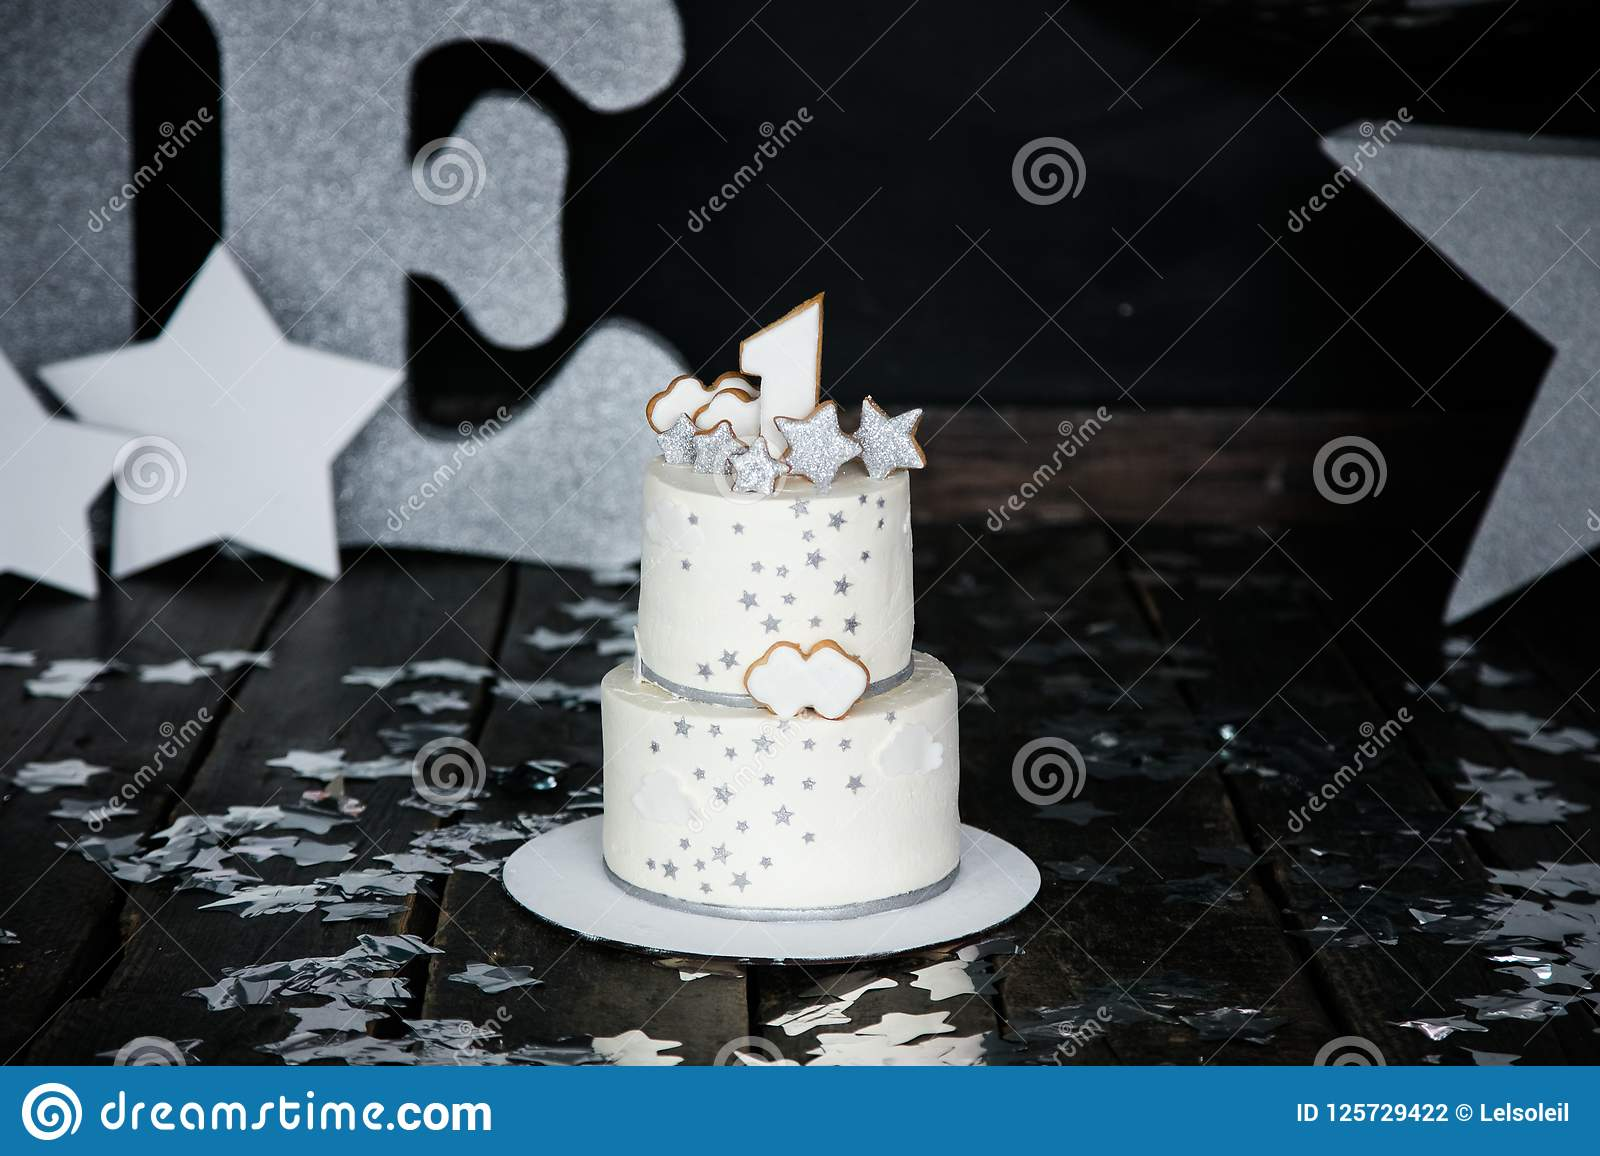 First Birthday White Cake With Stars And Candle For Little Baby Boy Decorations Smash